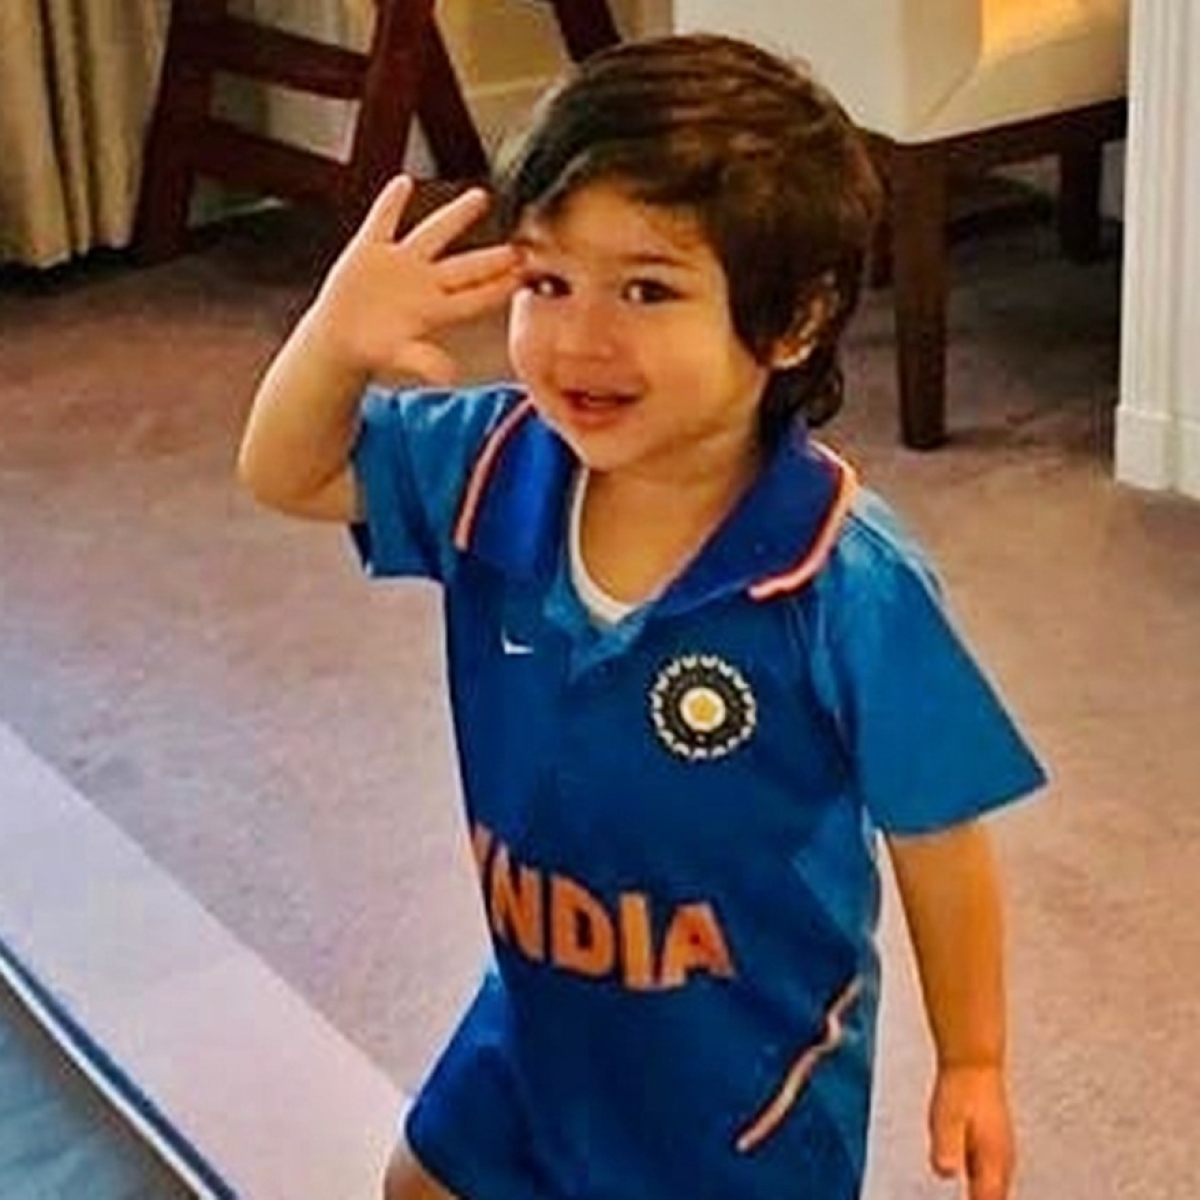 Fans going gaga over Taimur Ali Khan's picture celebrating India's victory over Pakistan